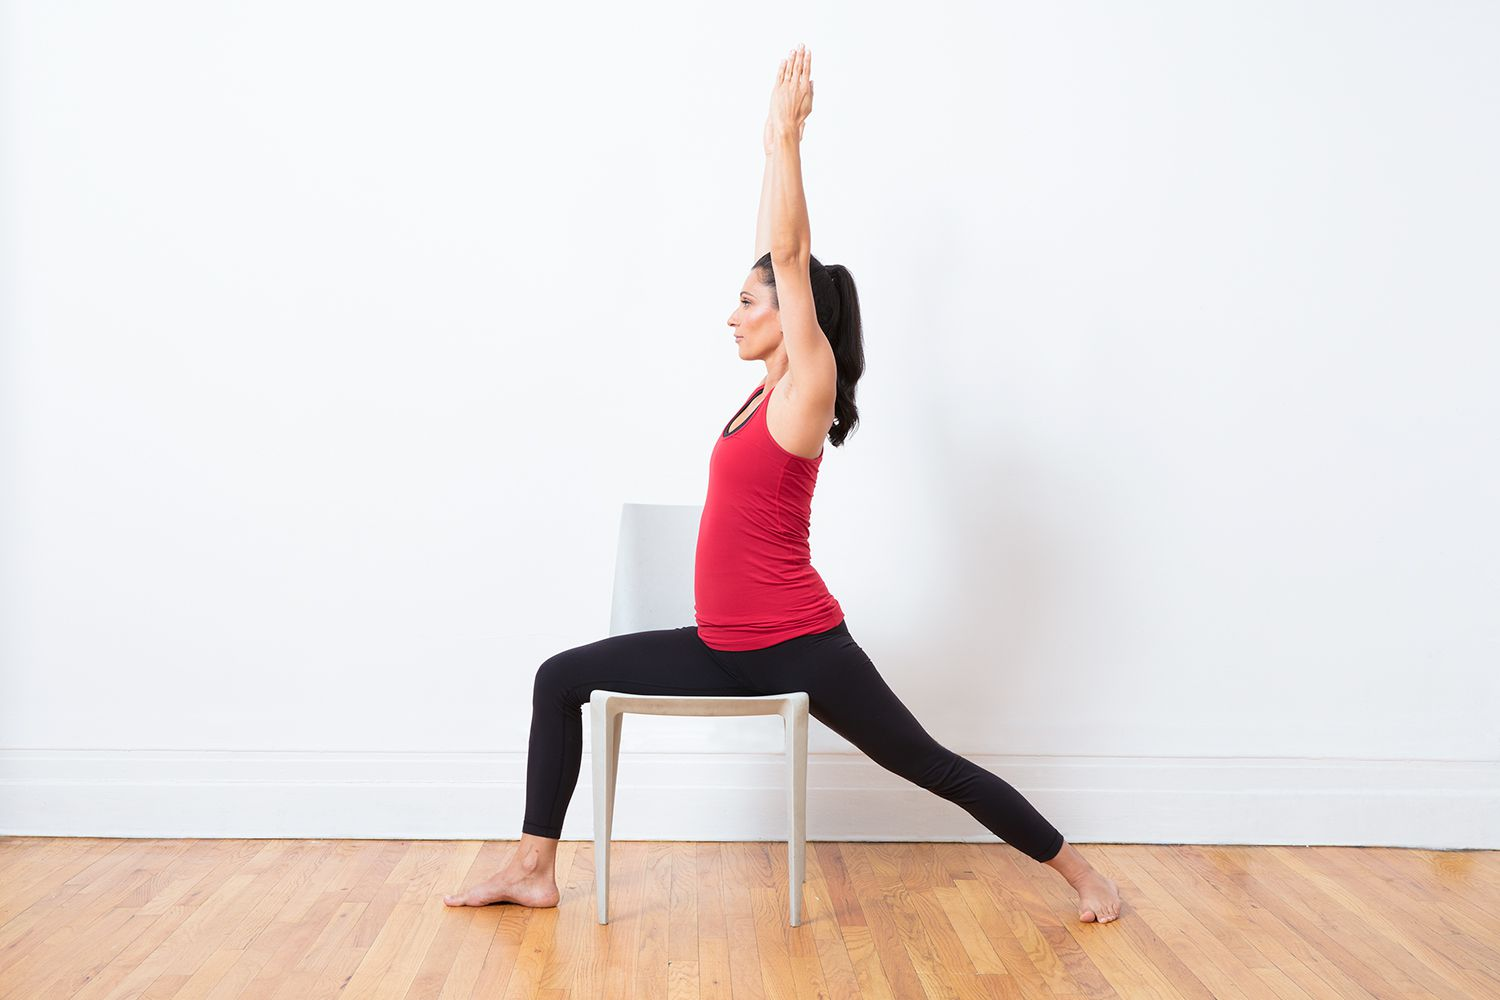 10 Chair Yoga Poses for Home Practice